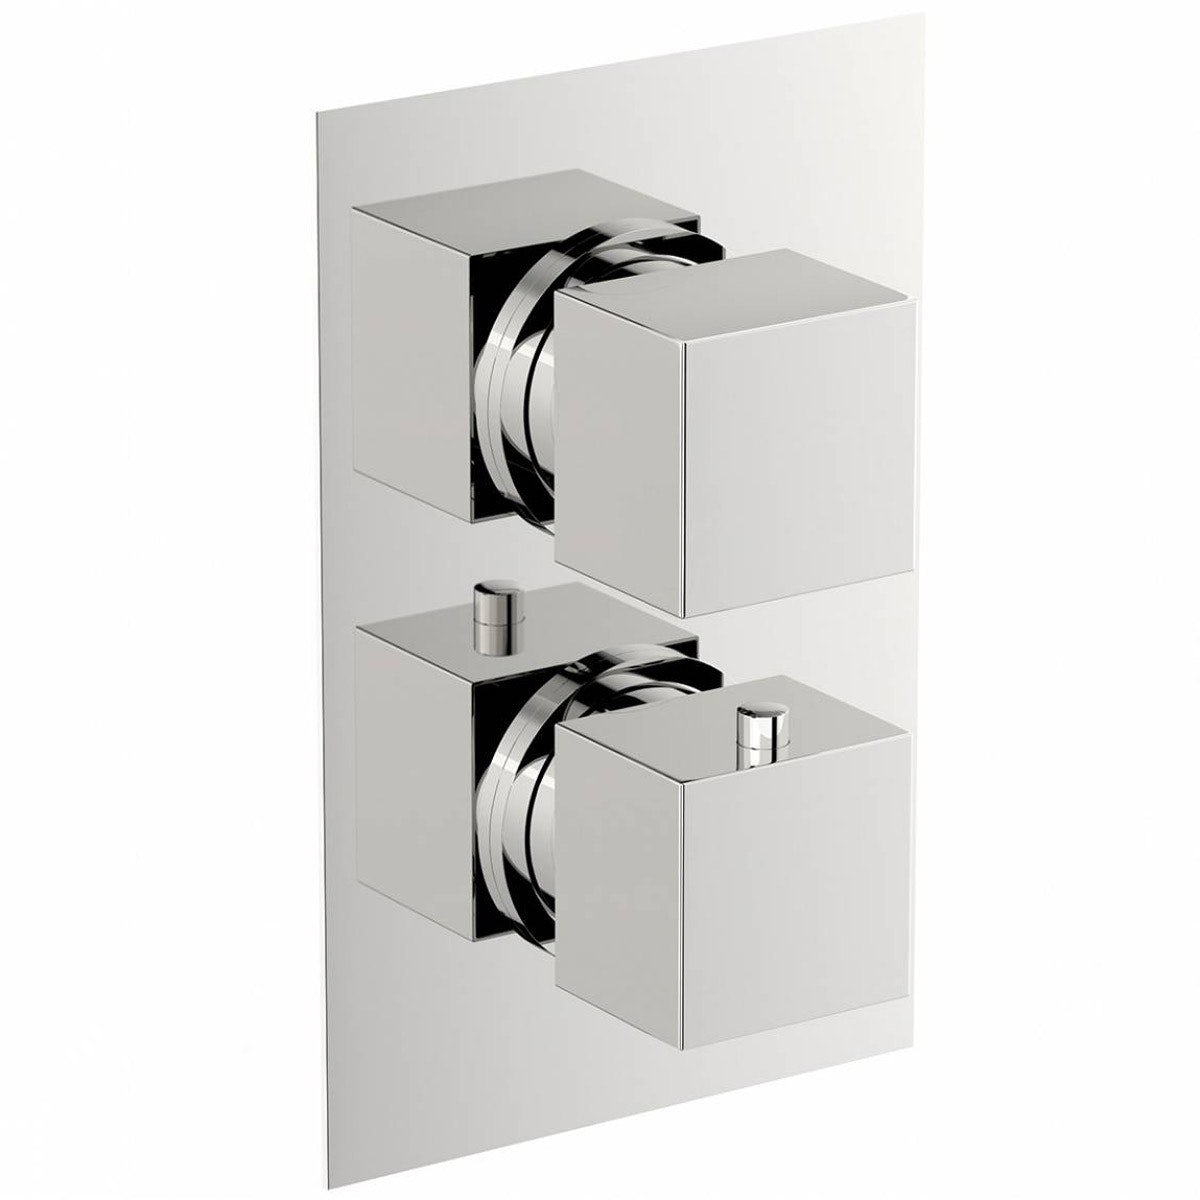 Mode Ellis square twin thermostatic shower valve